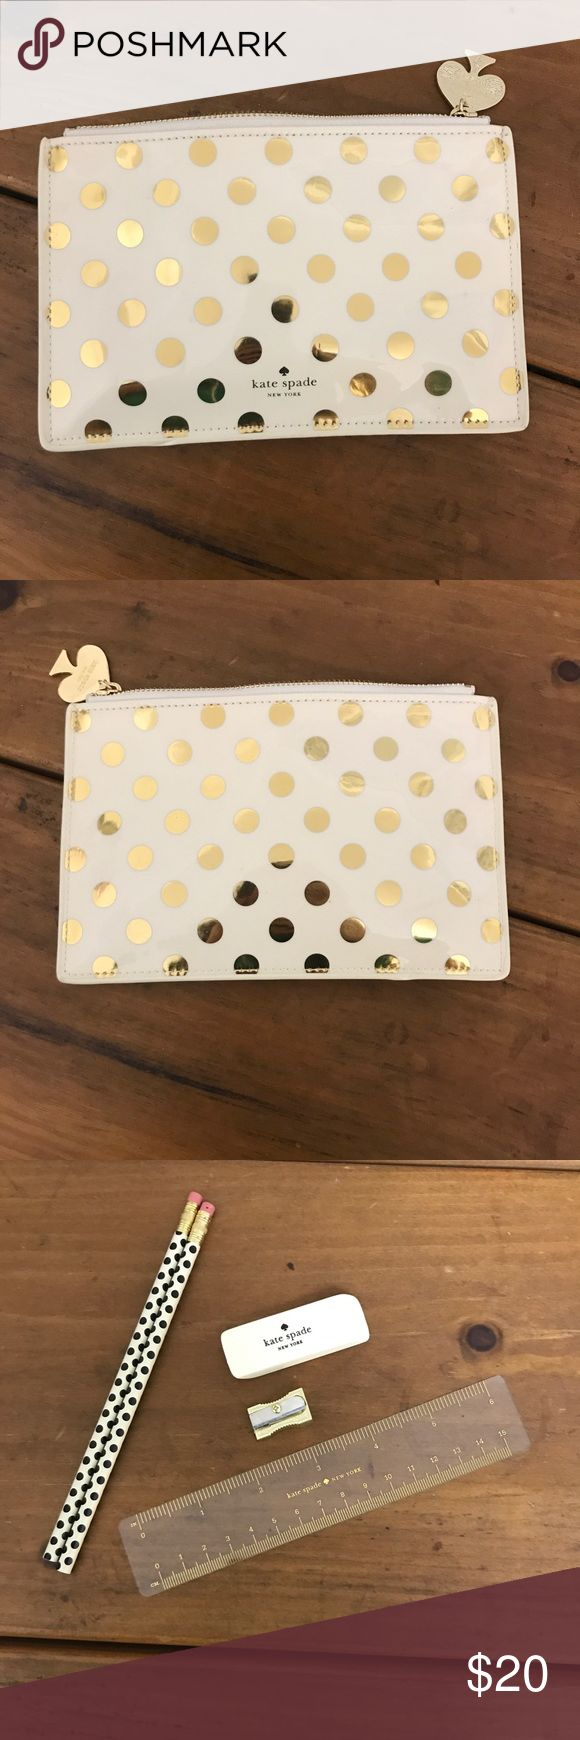 Kate spade pencil pouch Cute kate spade pencil pouch includes pencils, eraser, pencil sharpener, and rule inside! kate spade Accessories